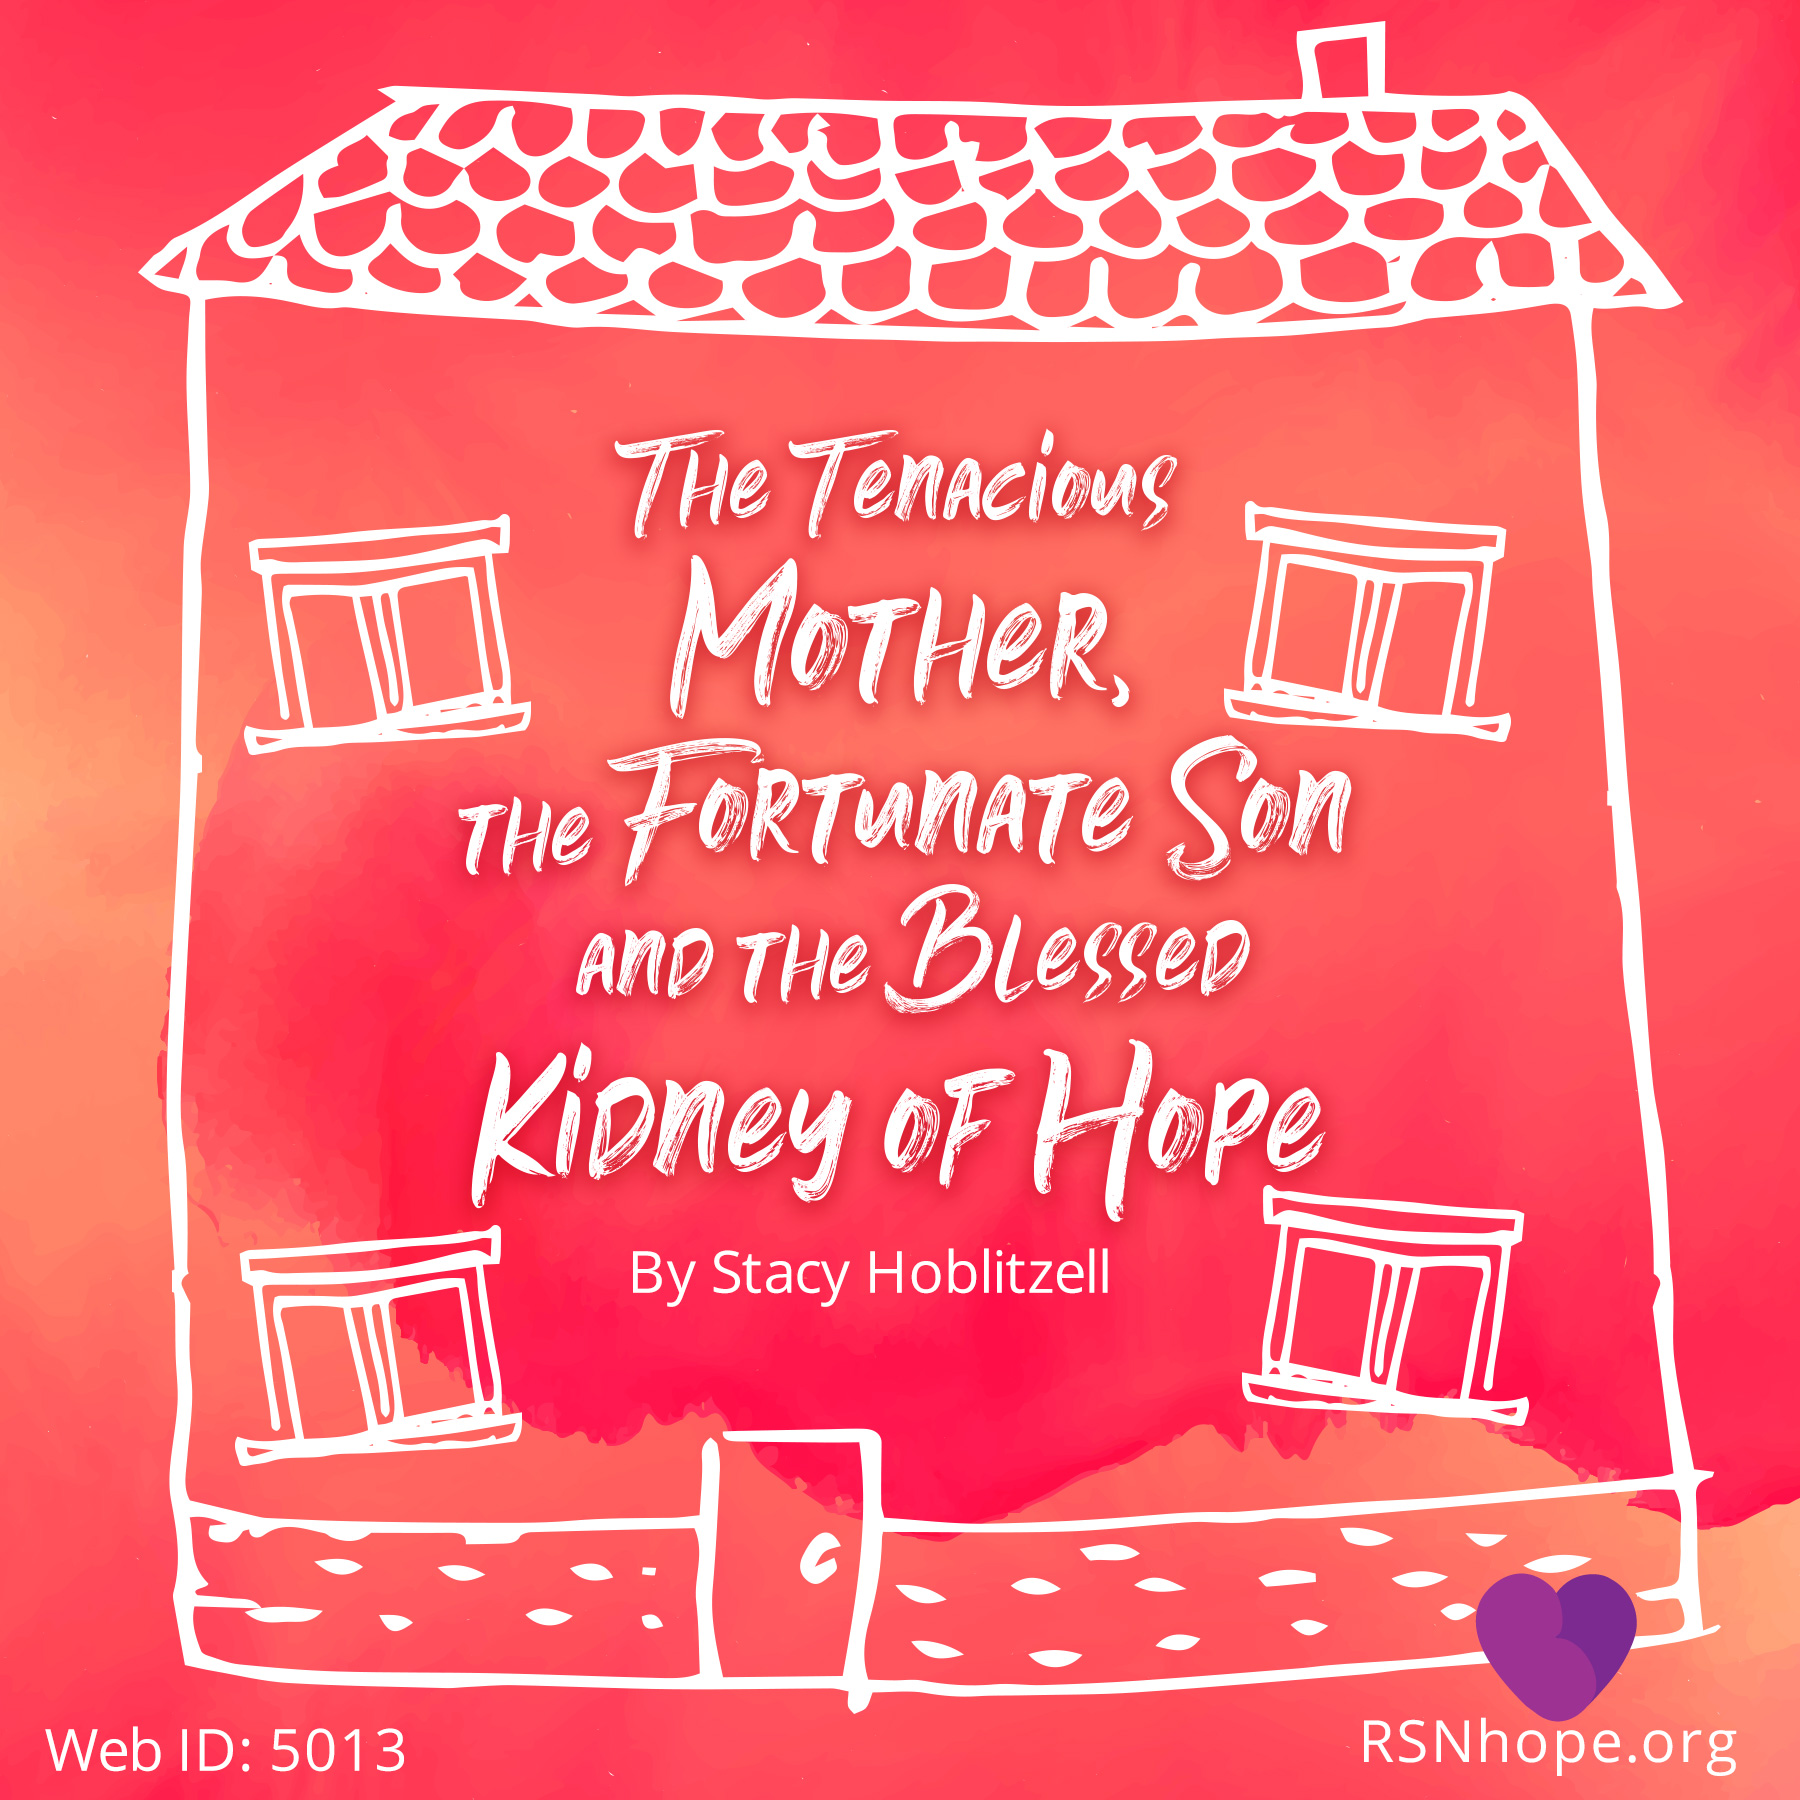 The Tenacious Mother Fortunate Son And Blessed Kidney Of